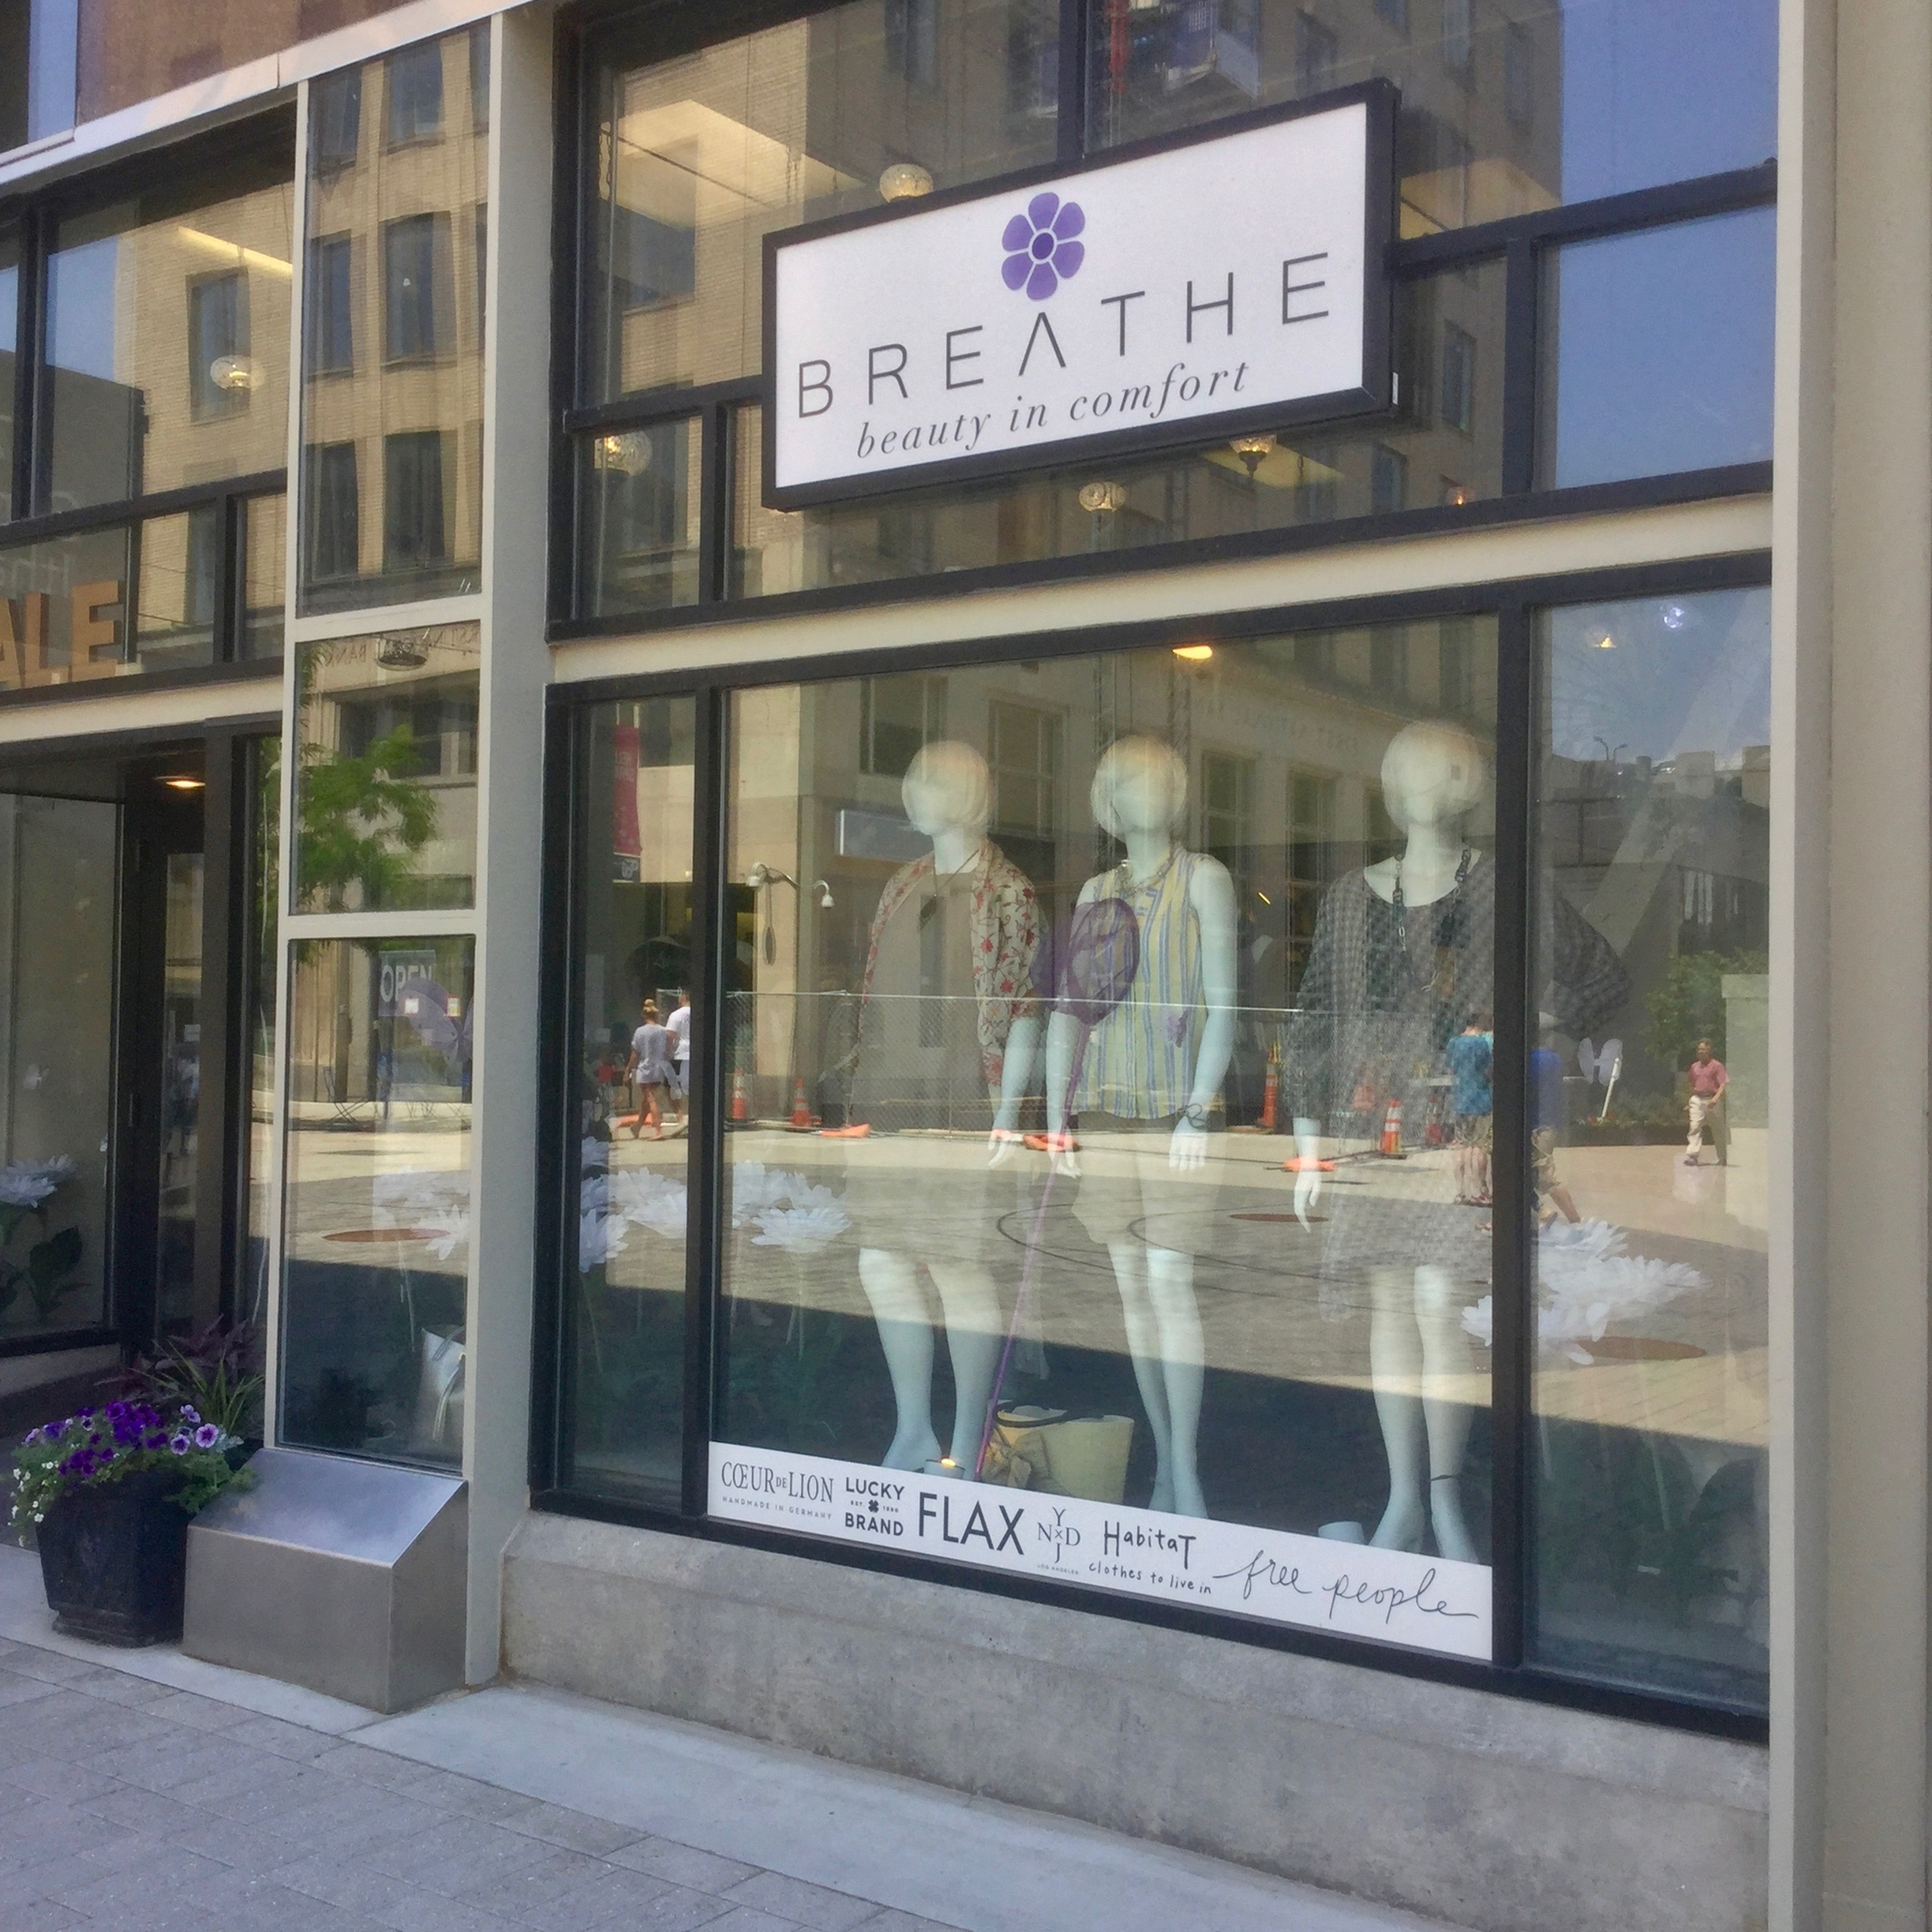 Breathe - Center Ithaca